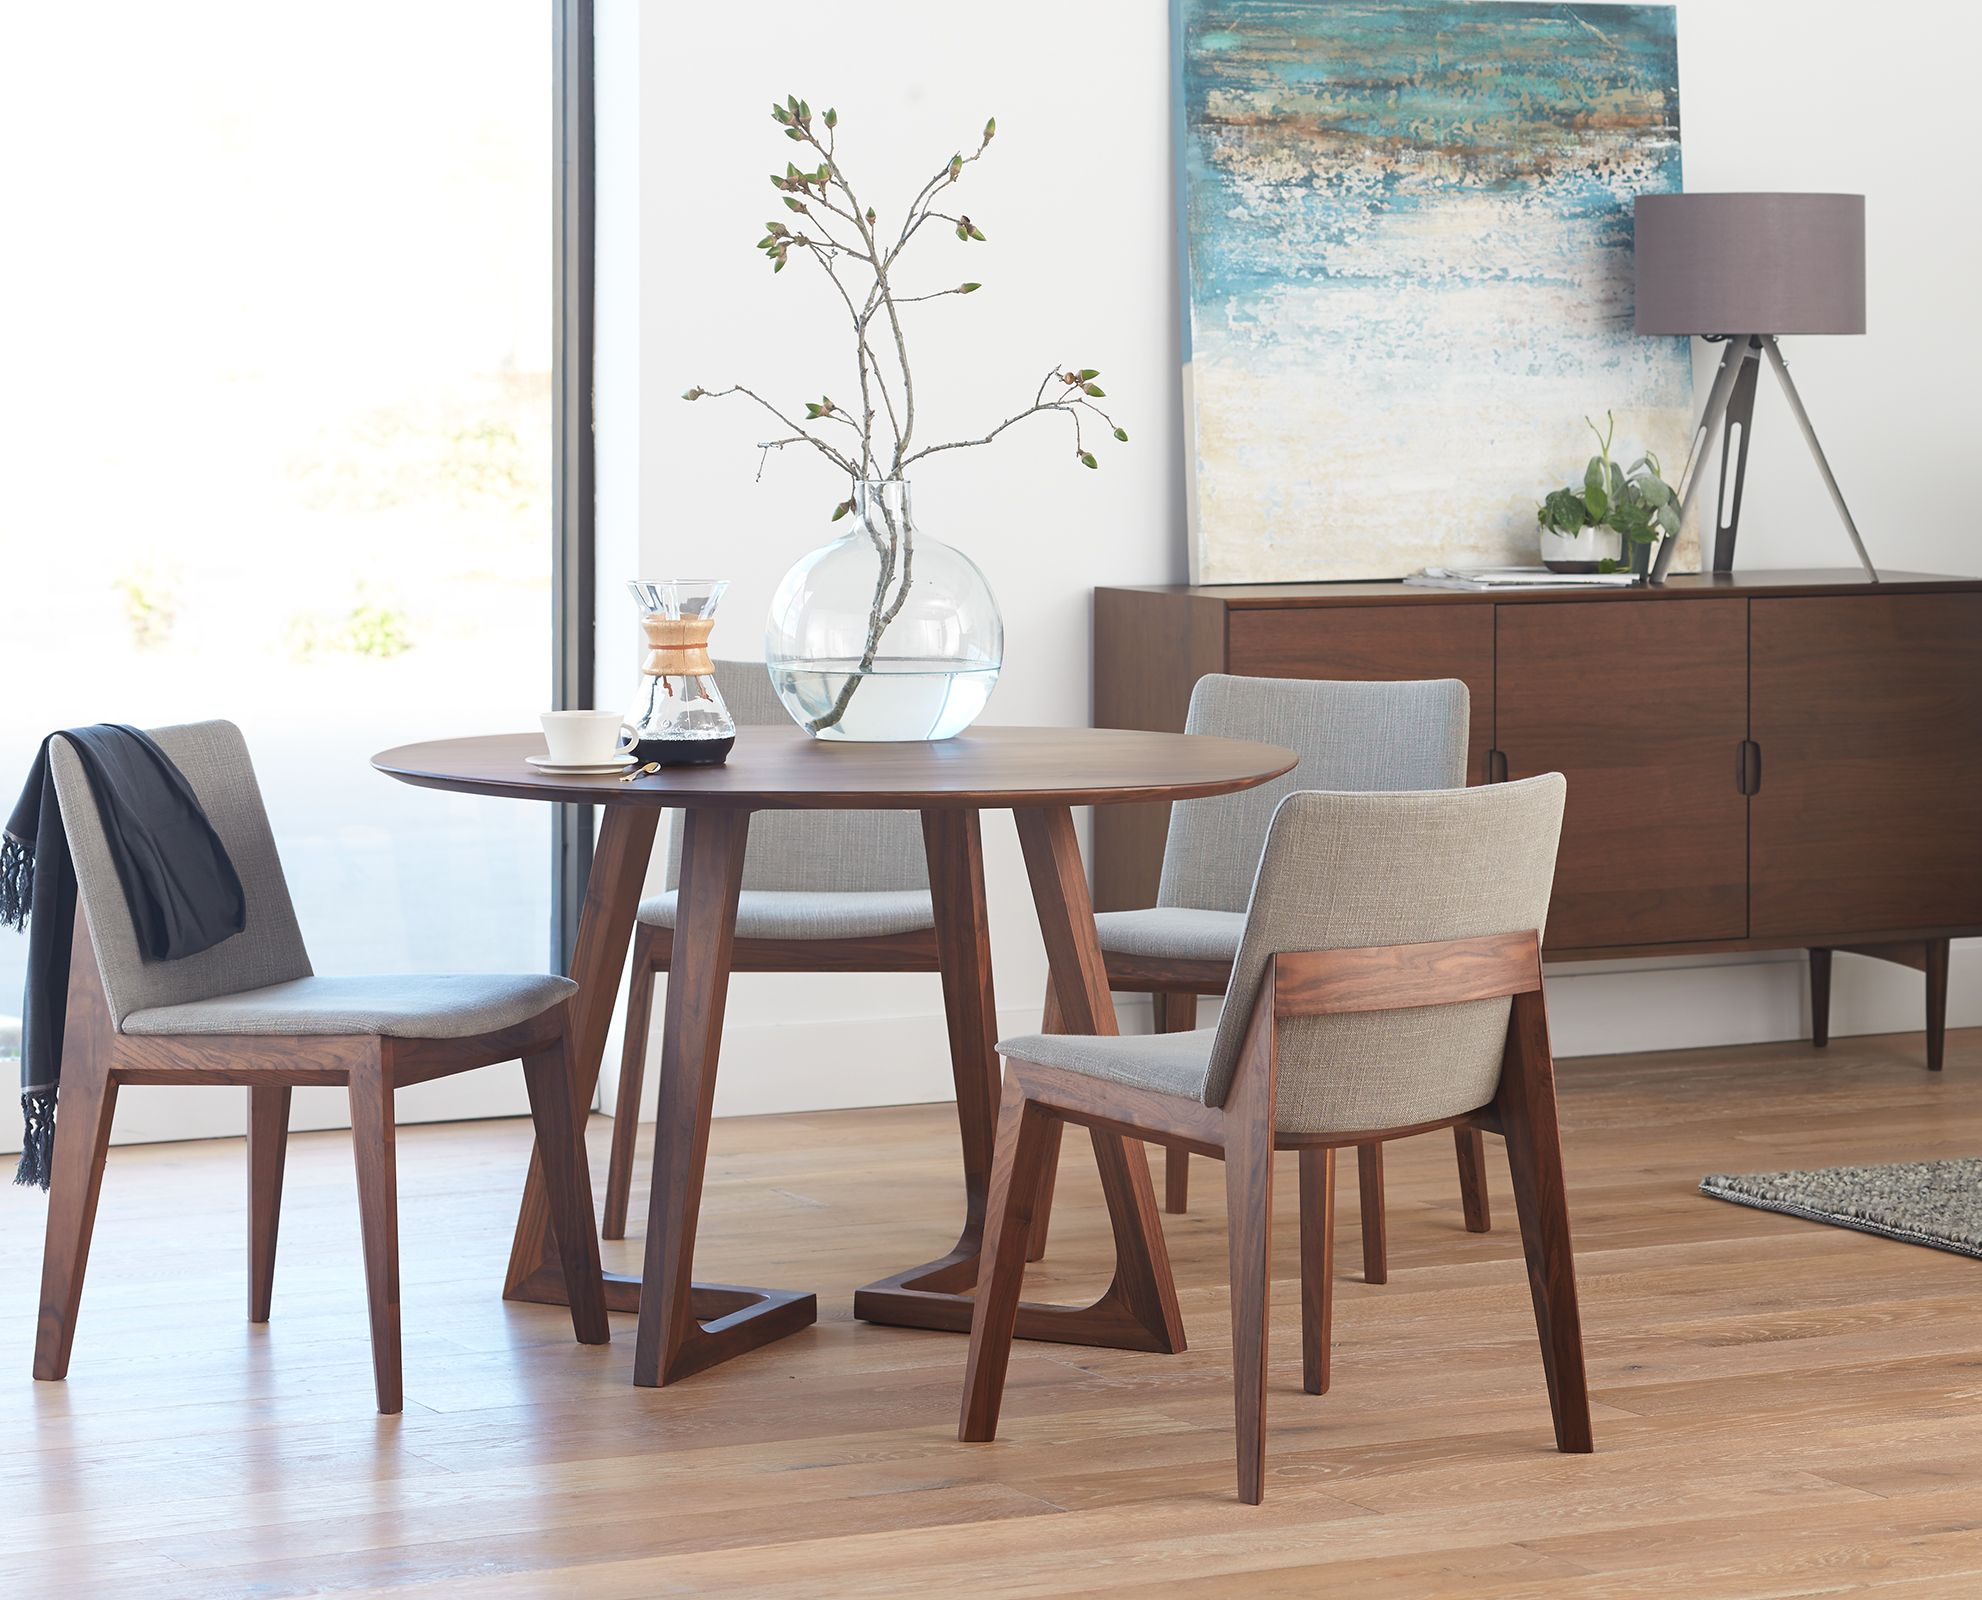 Round Table And Chairs From Dania Condo Pinterest Rounding Dining Scandinavian